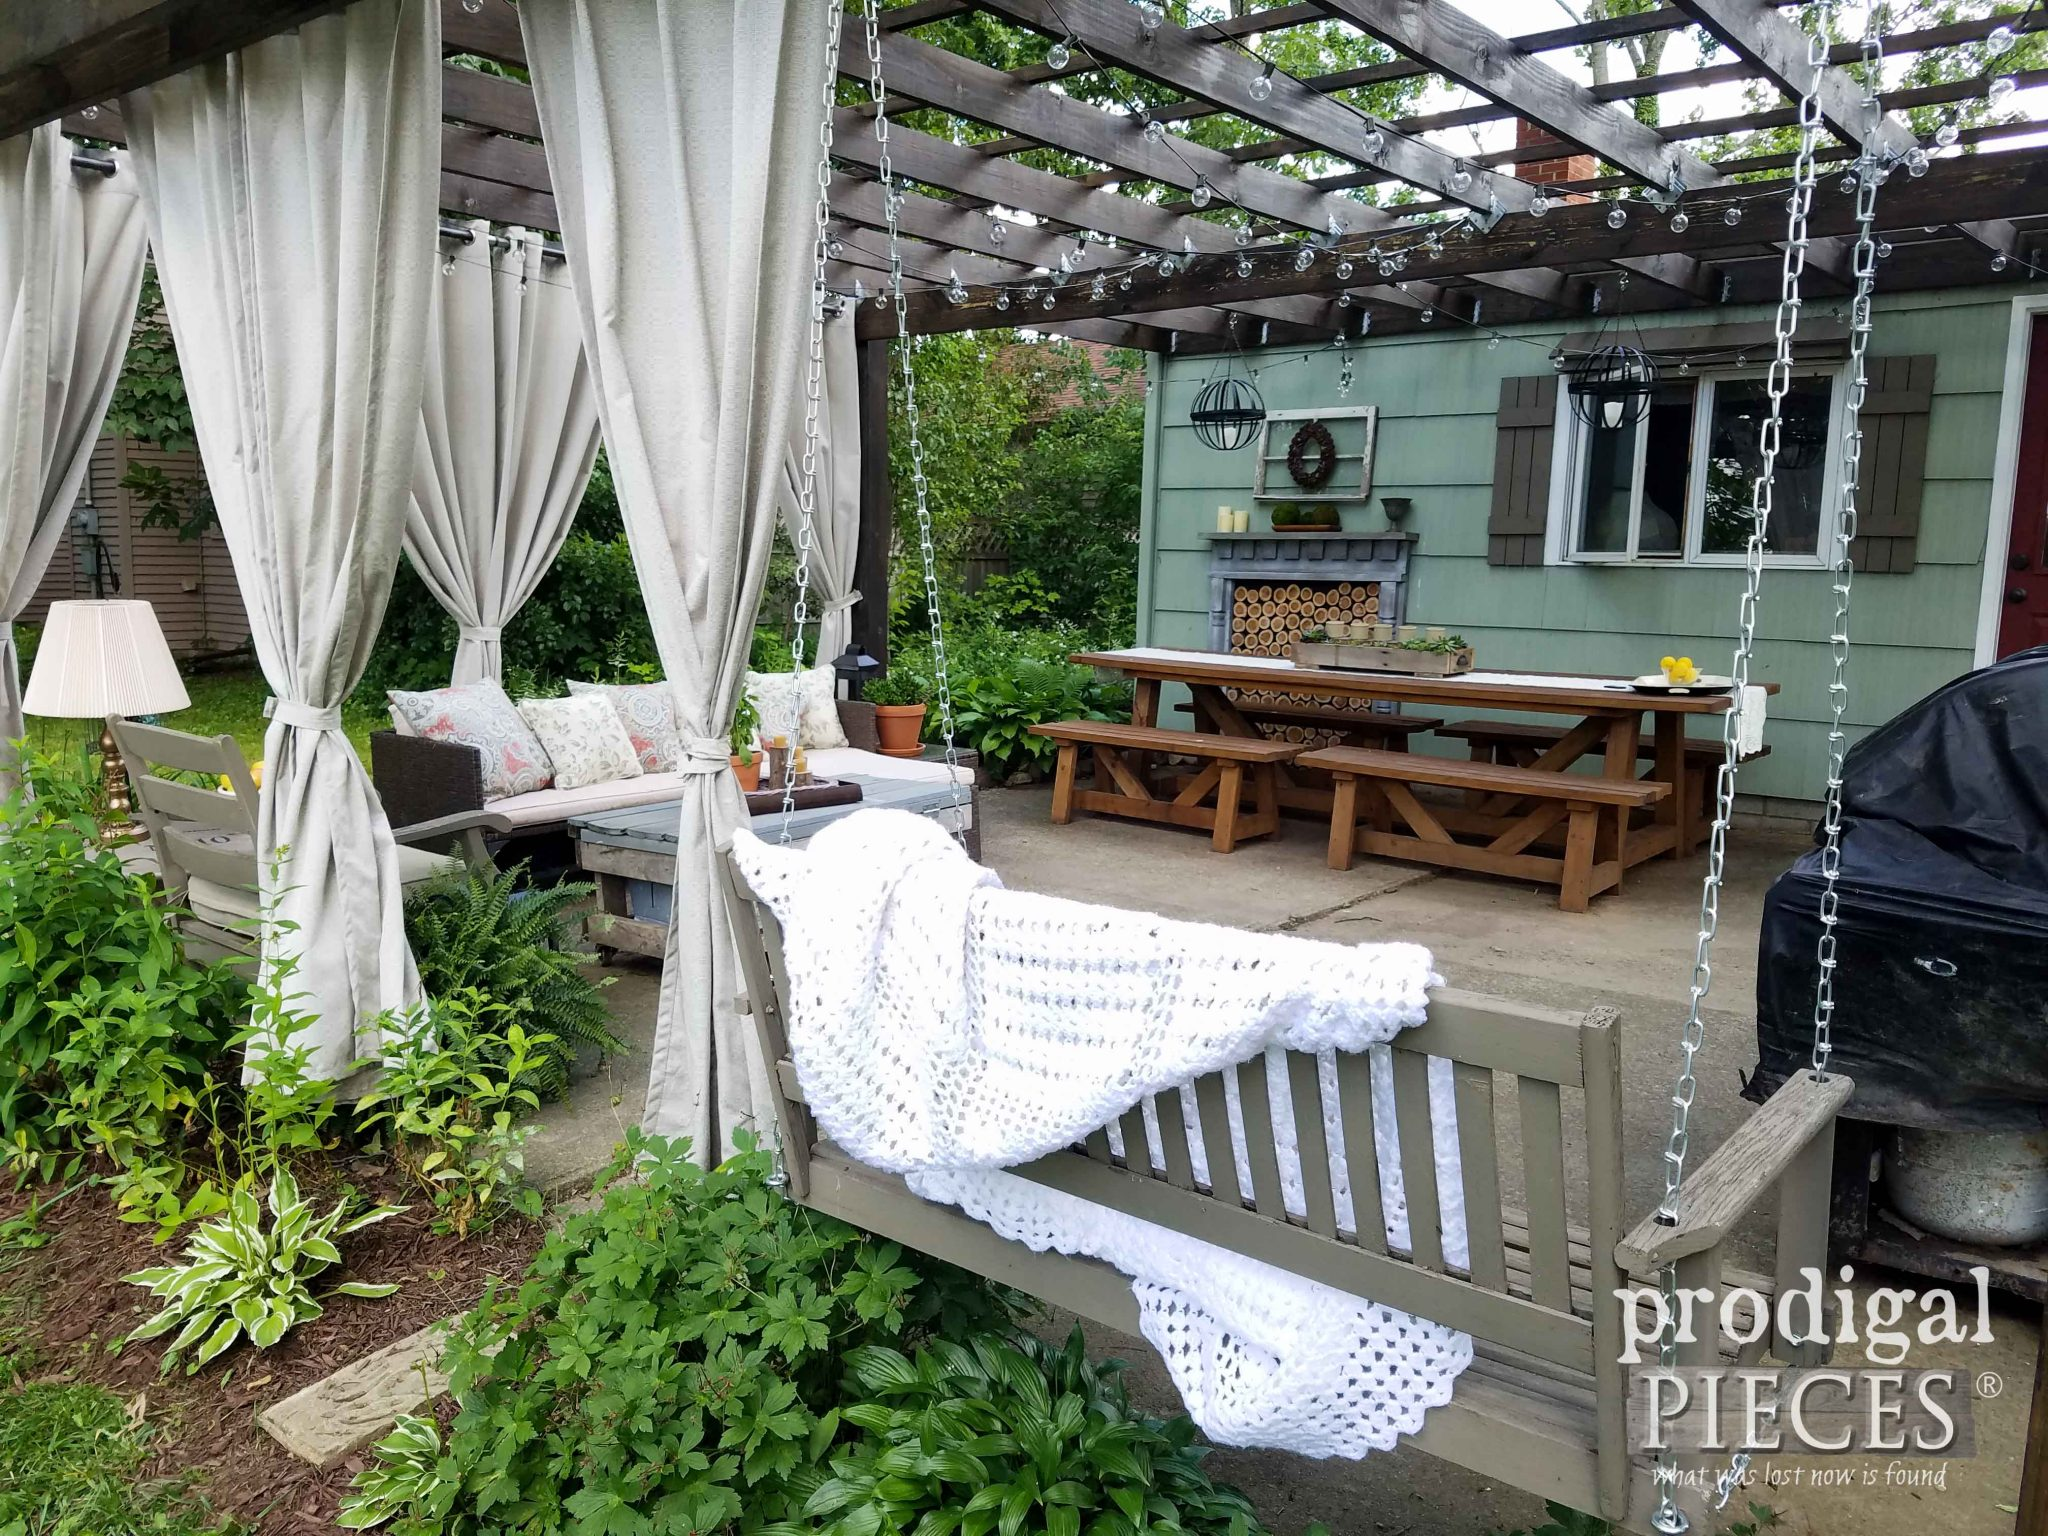 Dining Area Under Pergola on Patio ~ Design by Prodigal Pieces | prodigalpieces.com